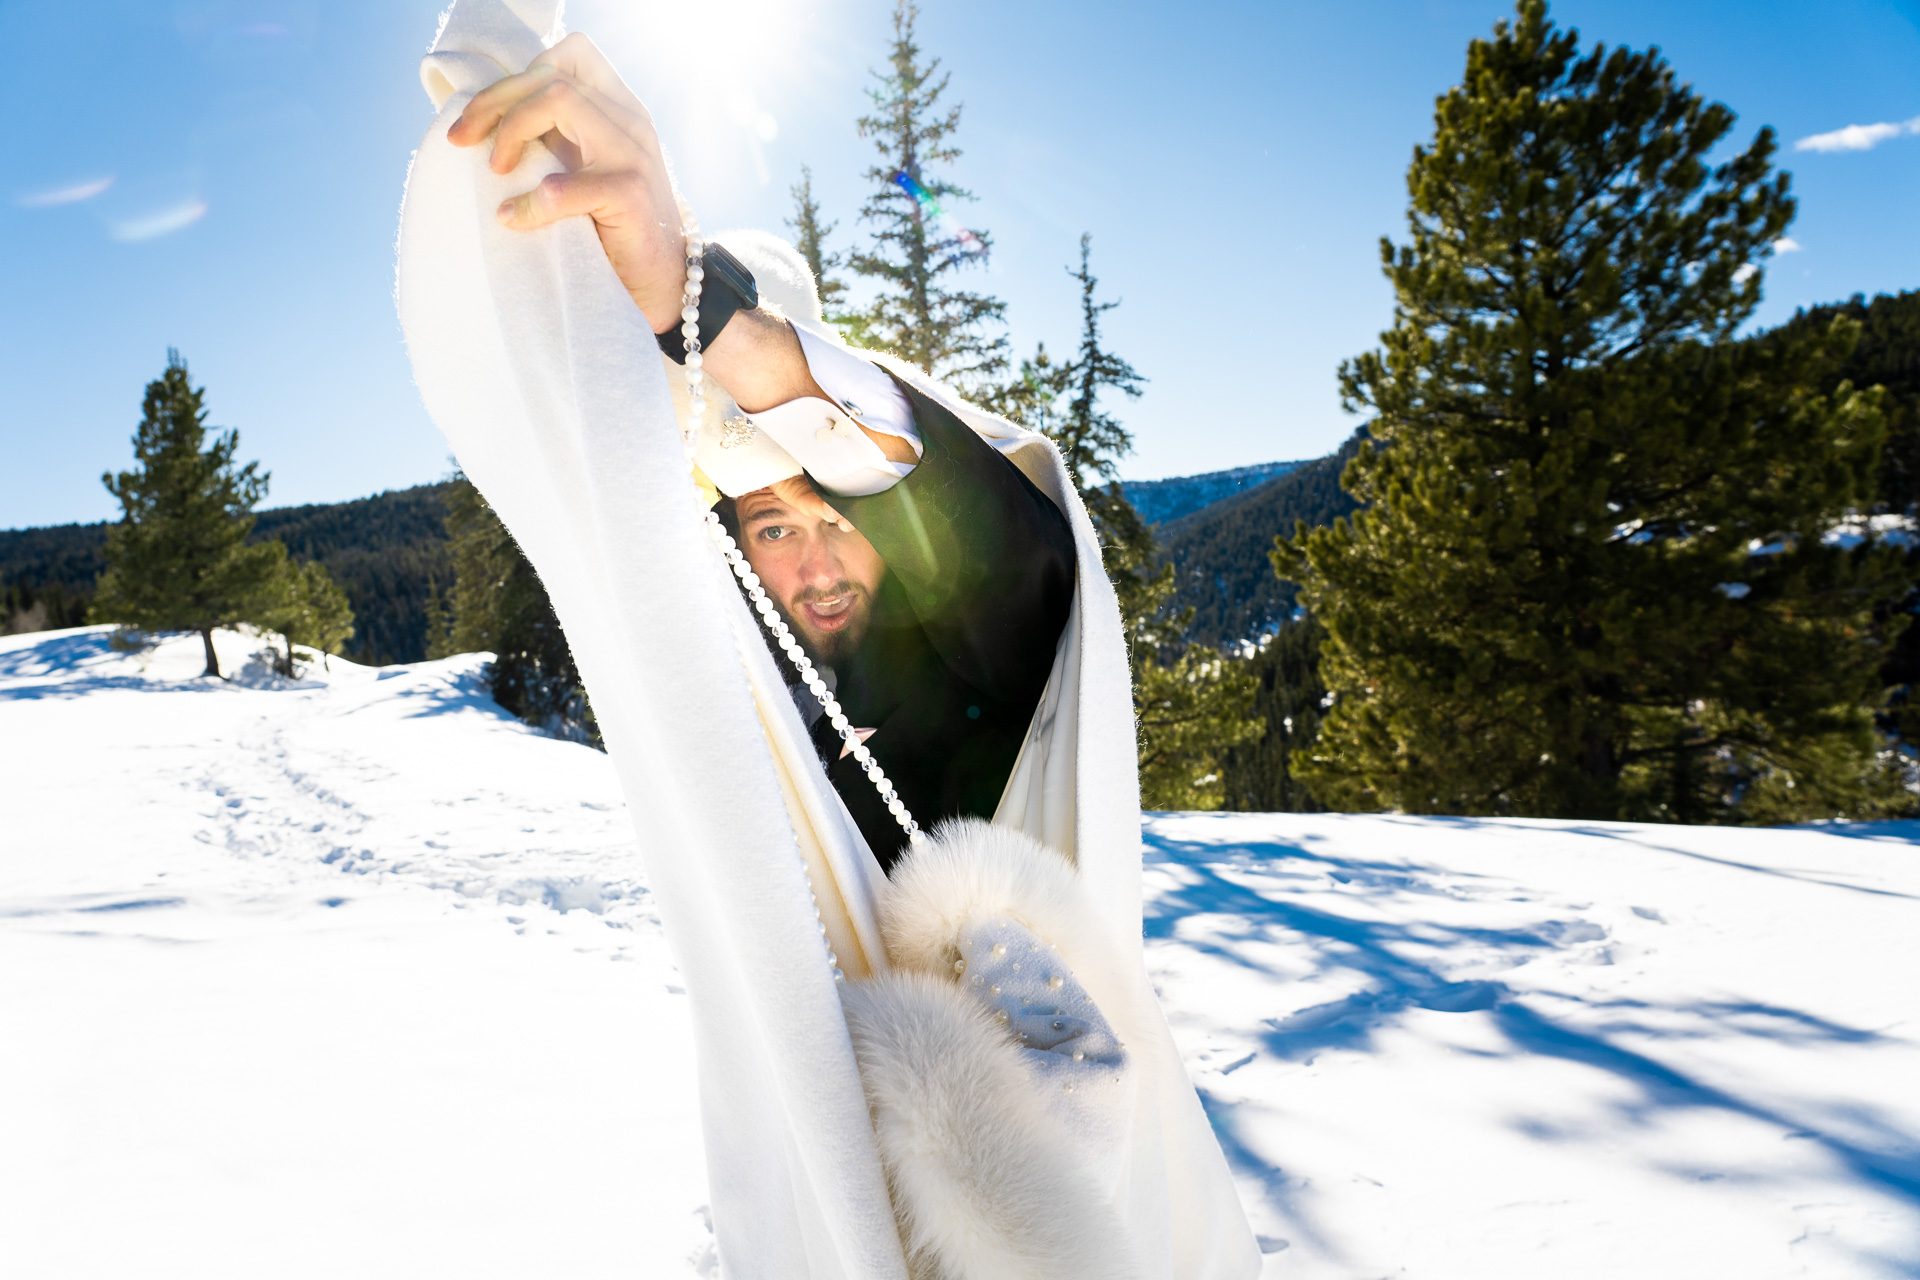 Piedra Canyon Overlook, CO Winter Snow Wedding Picture | a first-look trick on the groom